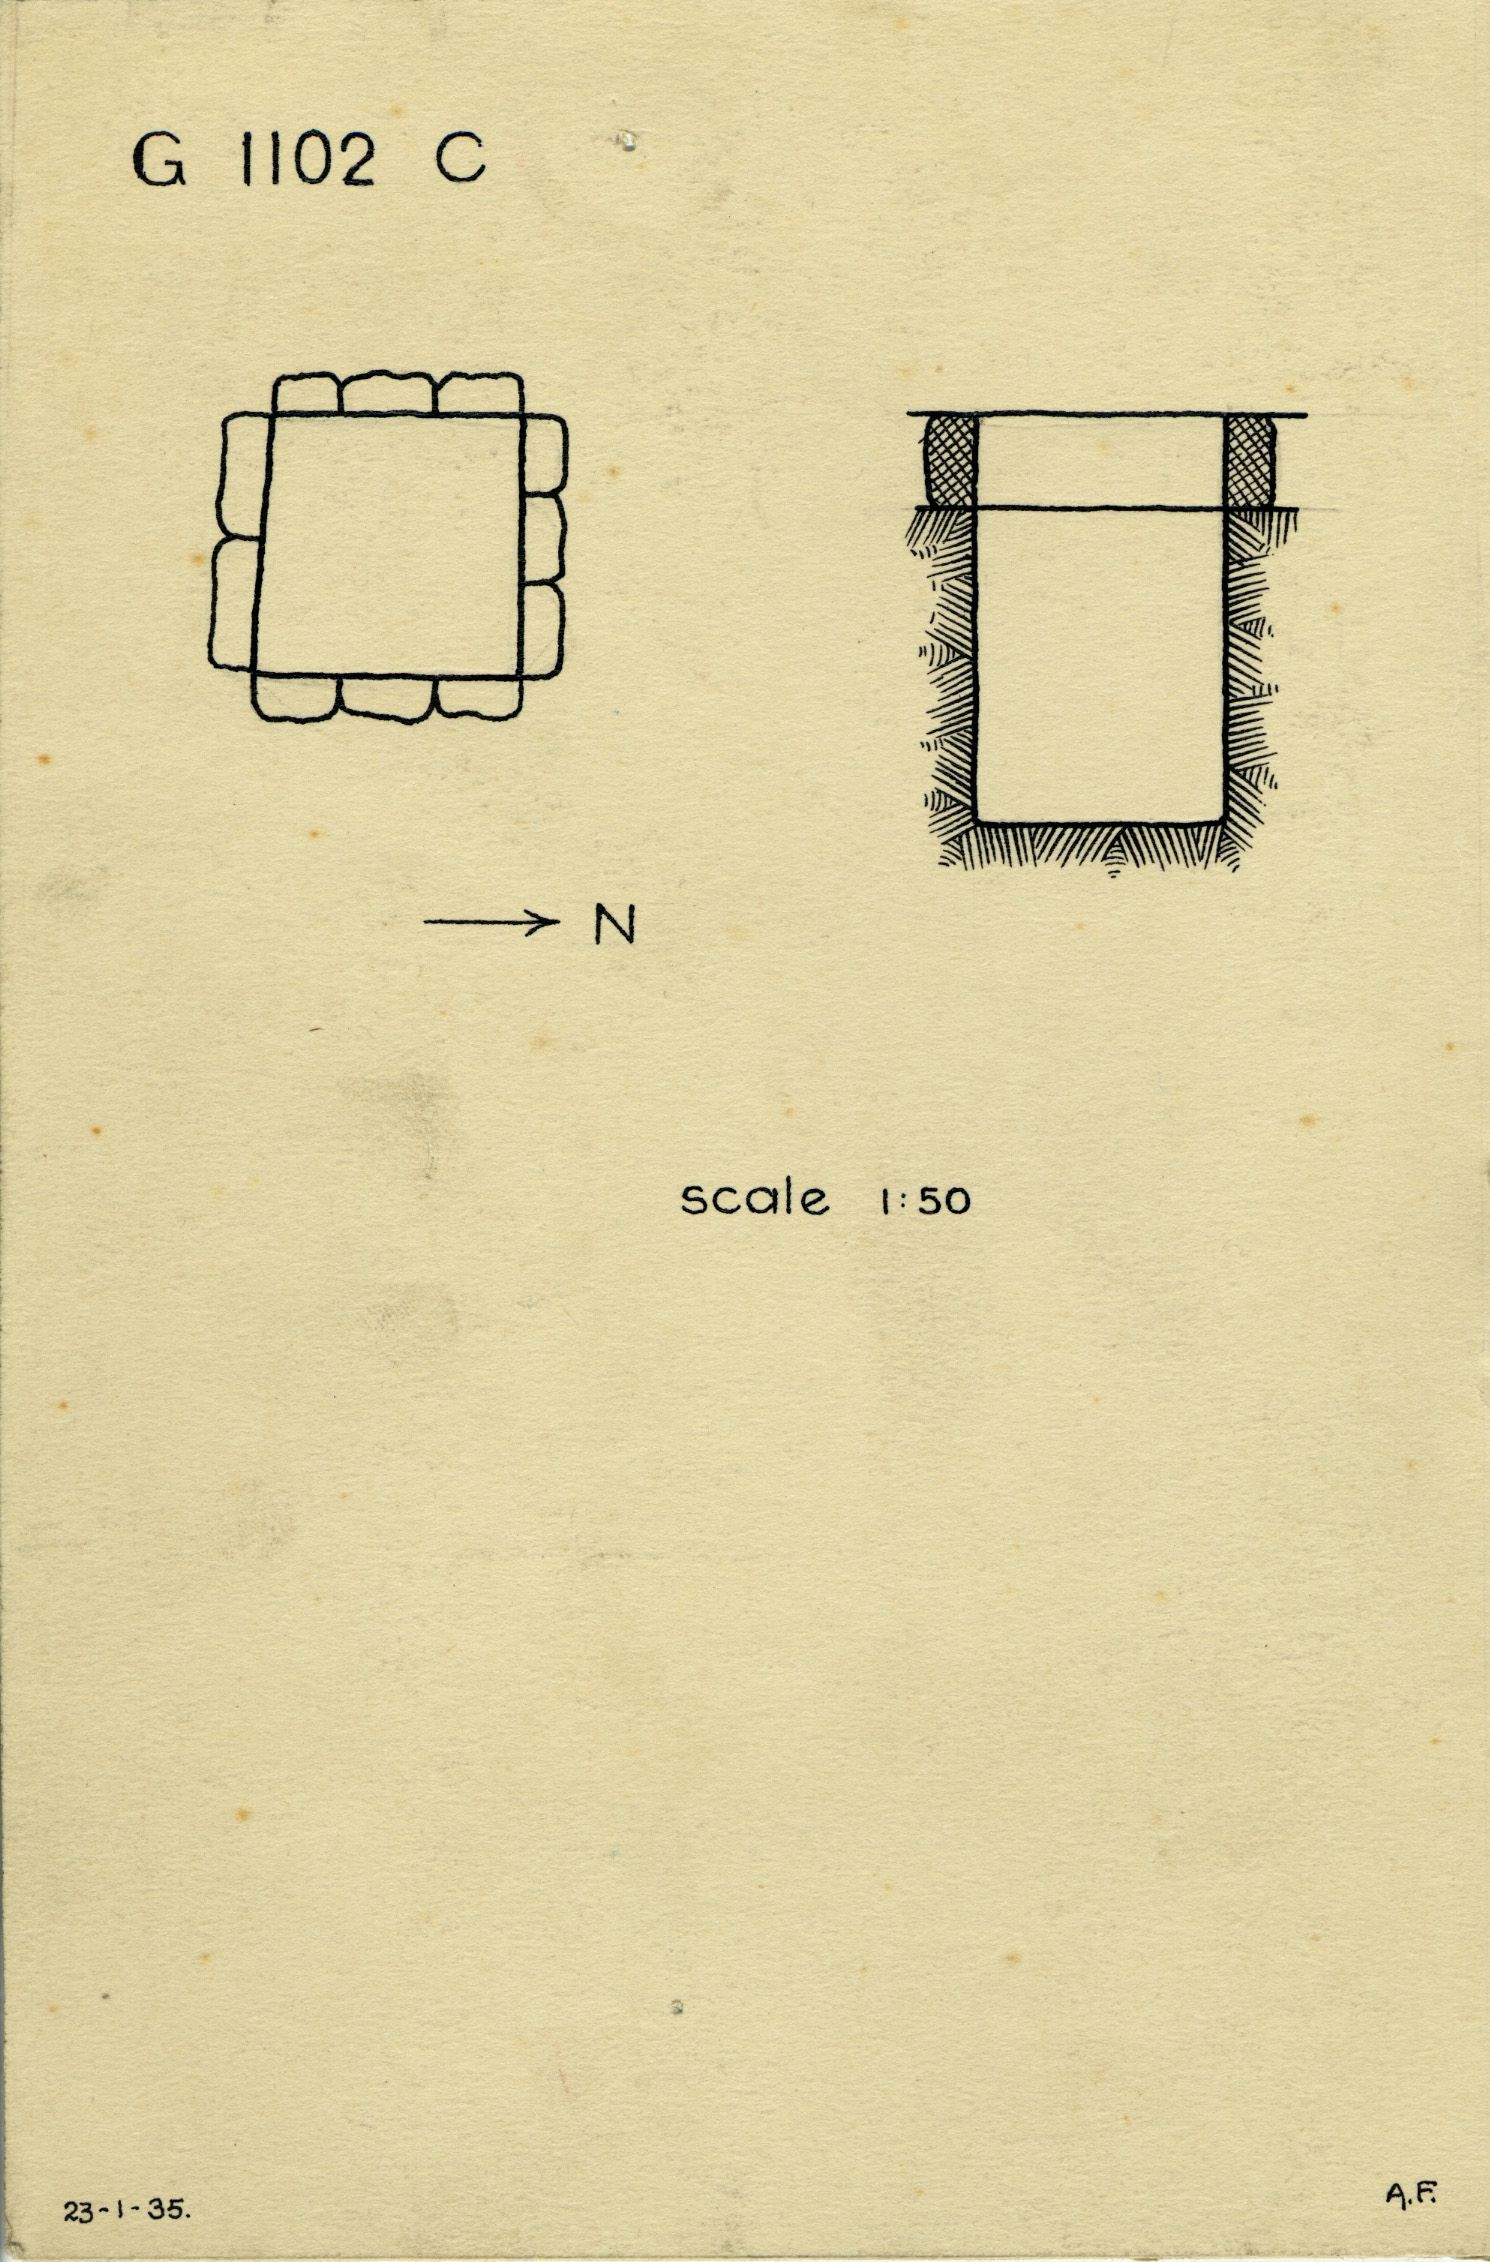 Maps and plans: G 1102, Shaft C